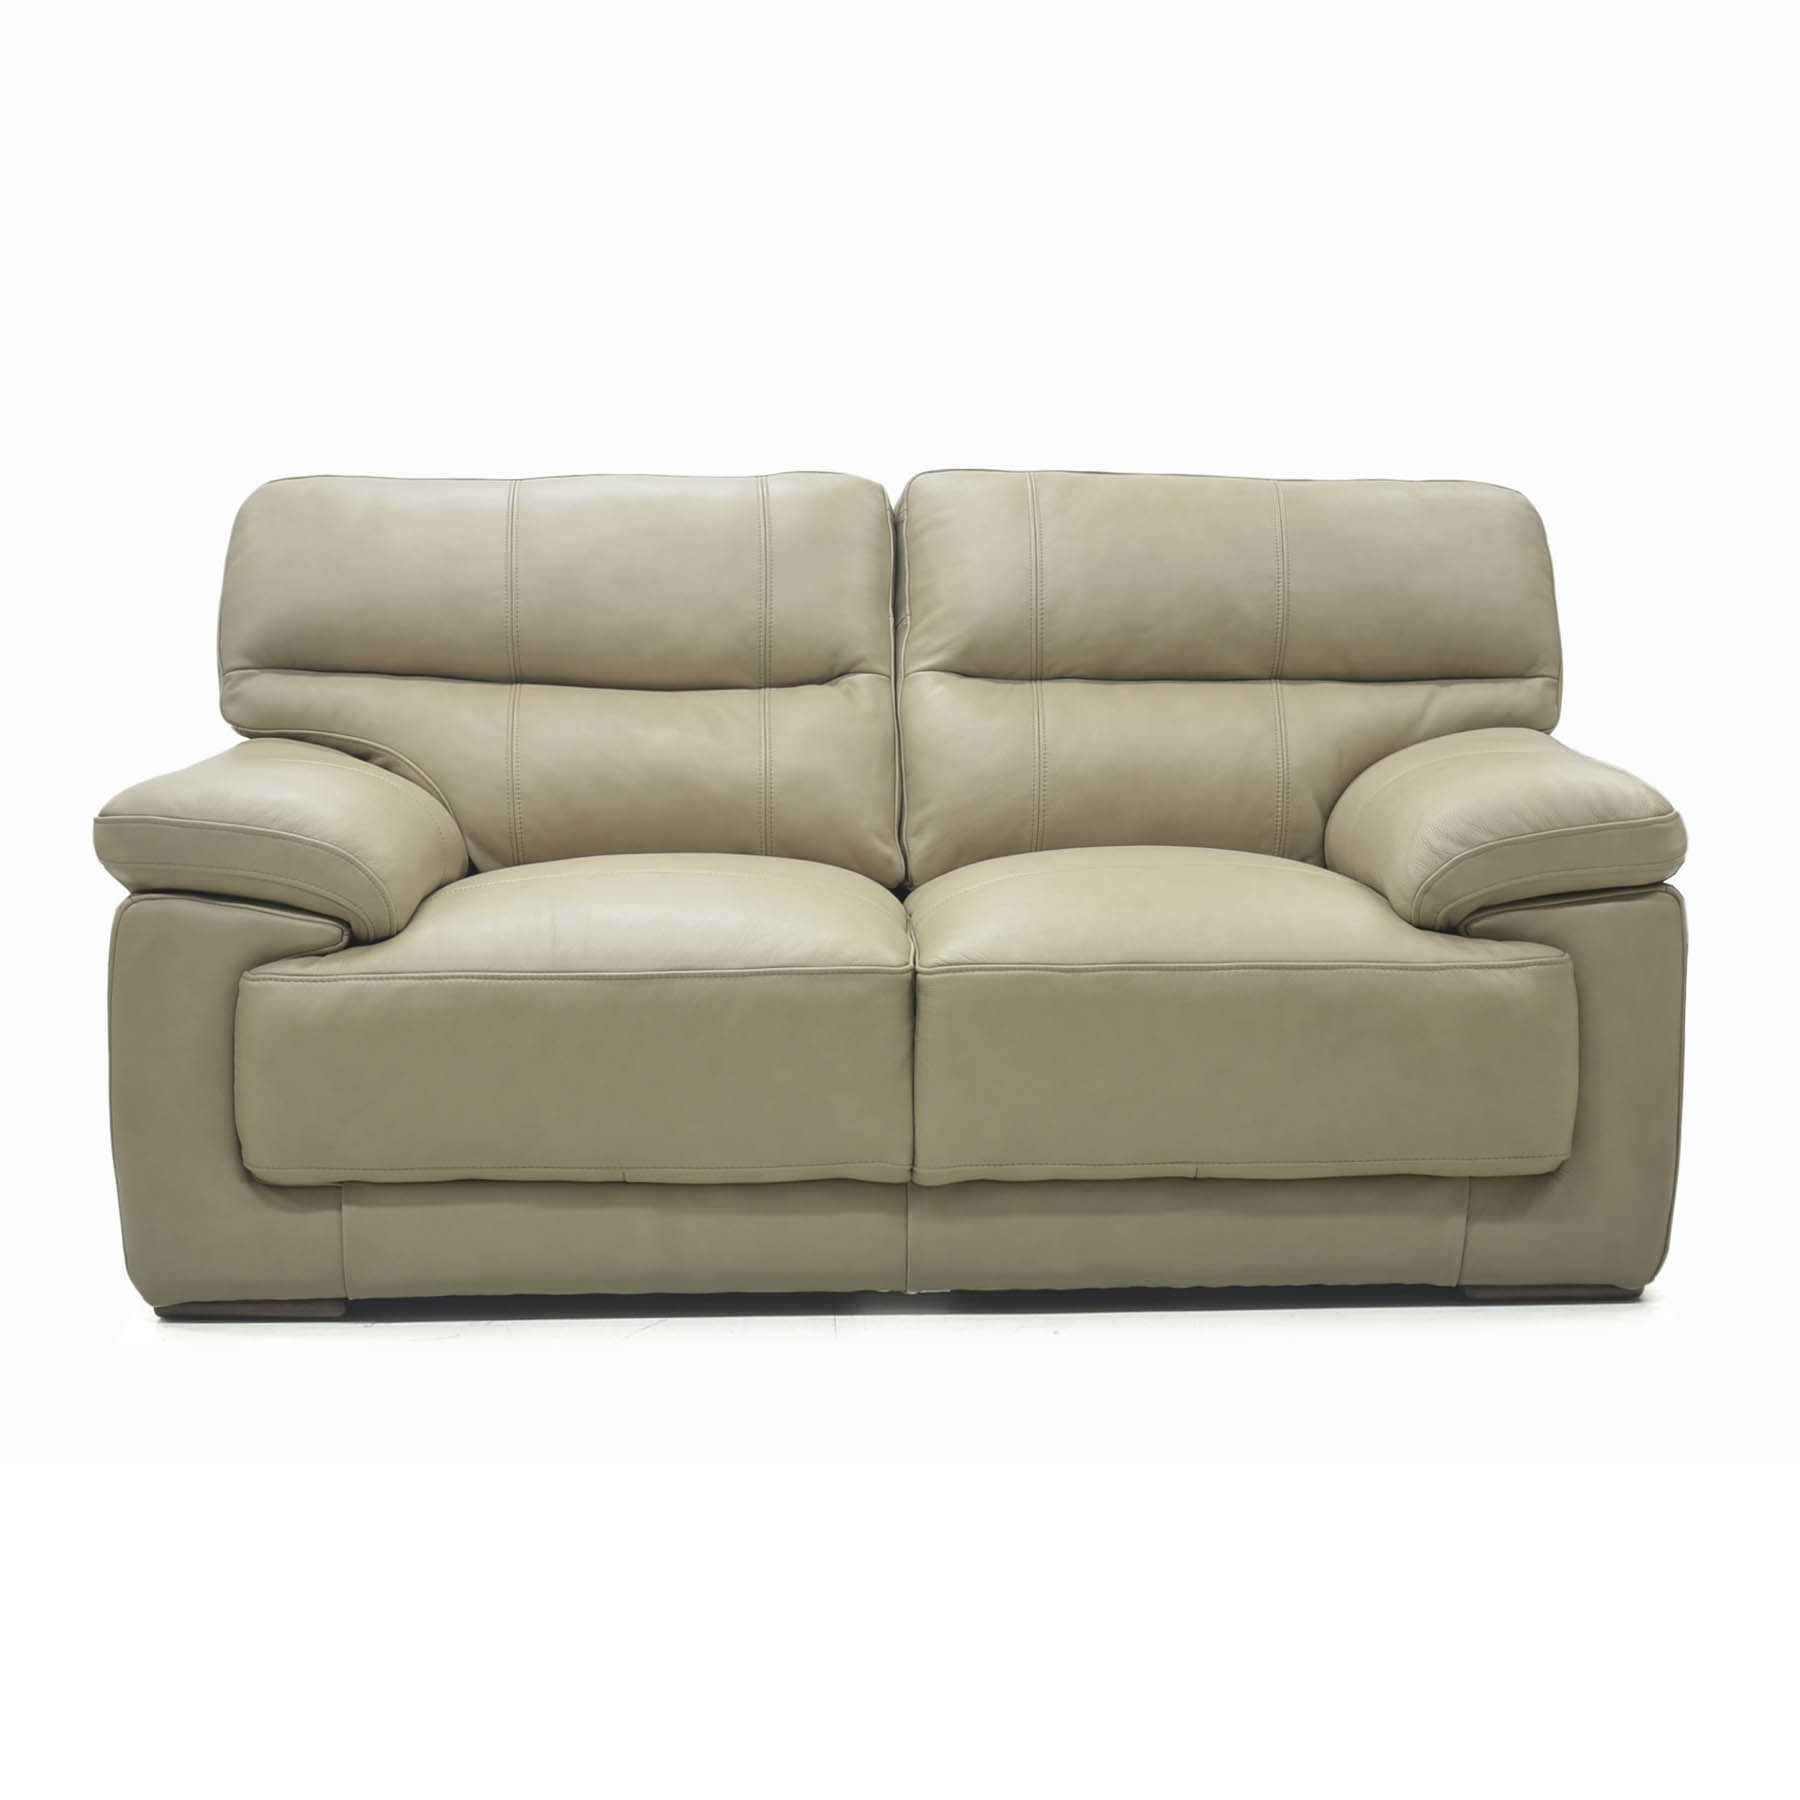 Florence Medium 2 Seater Sofa In Florence Medium Sofas (Image 9 of 15)